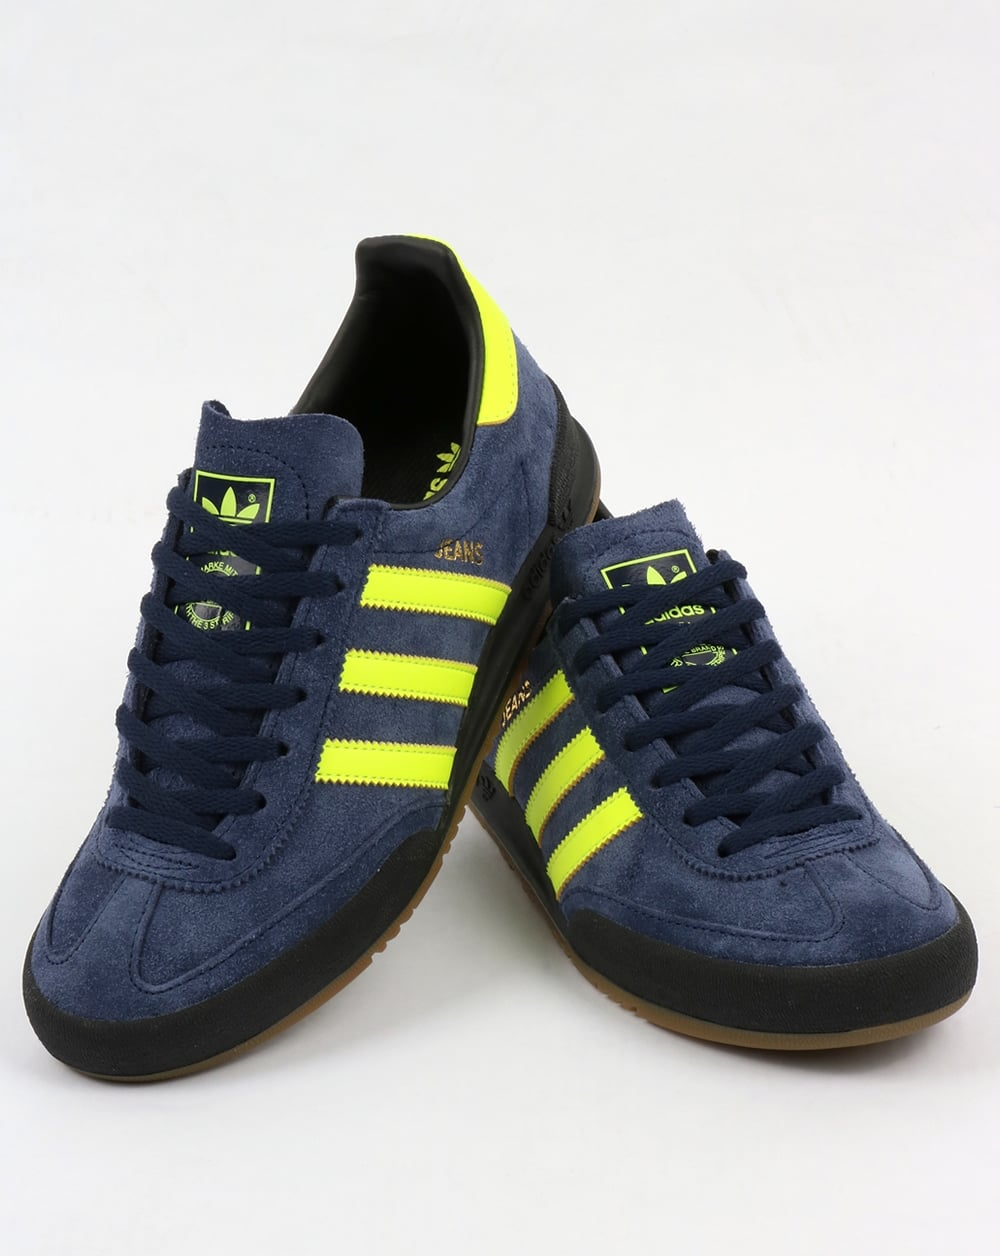 Casuals Shoes Adidas